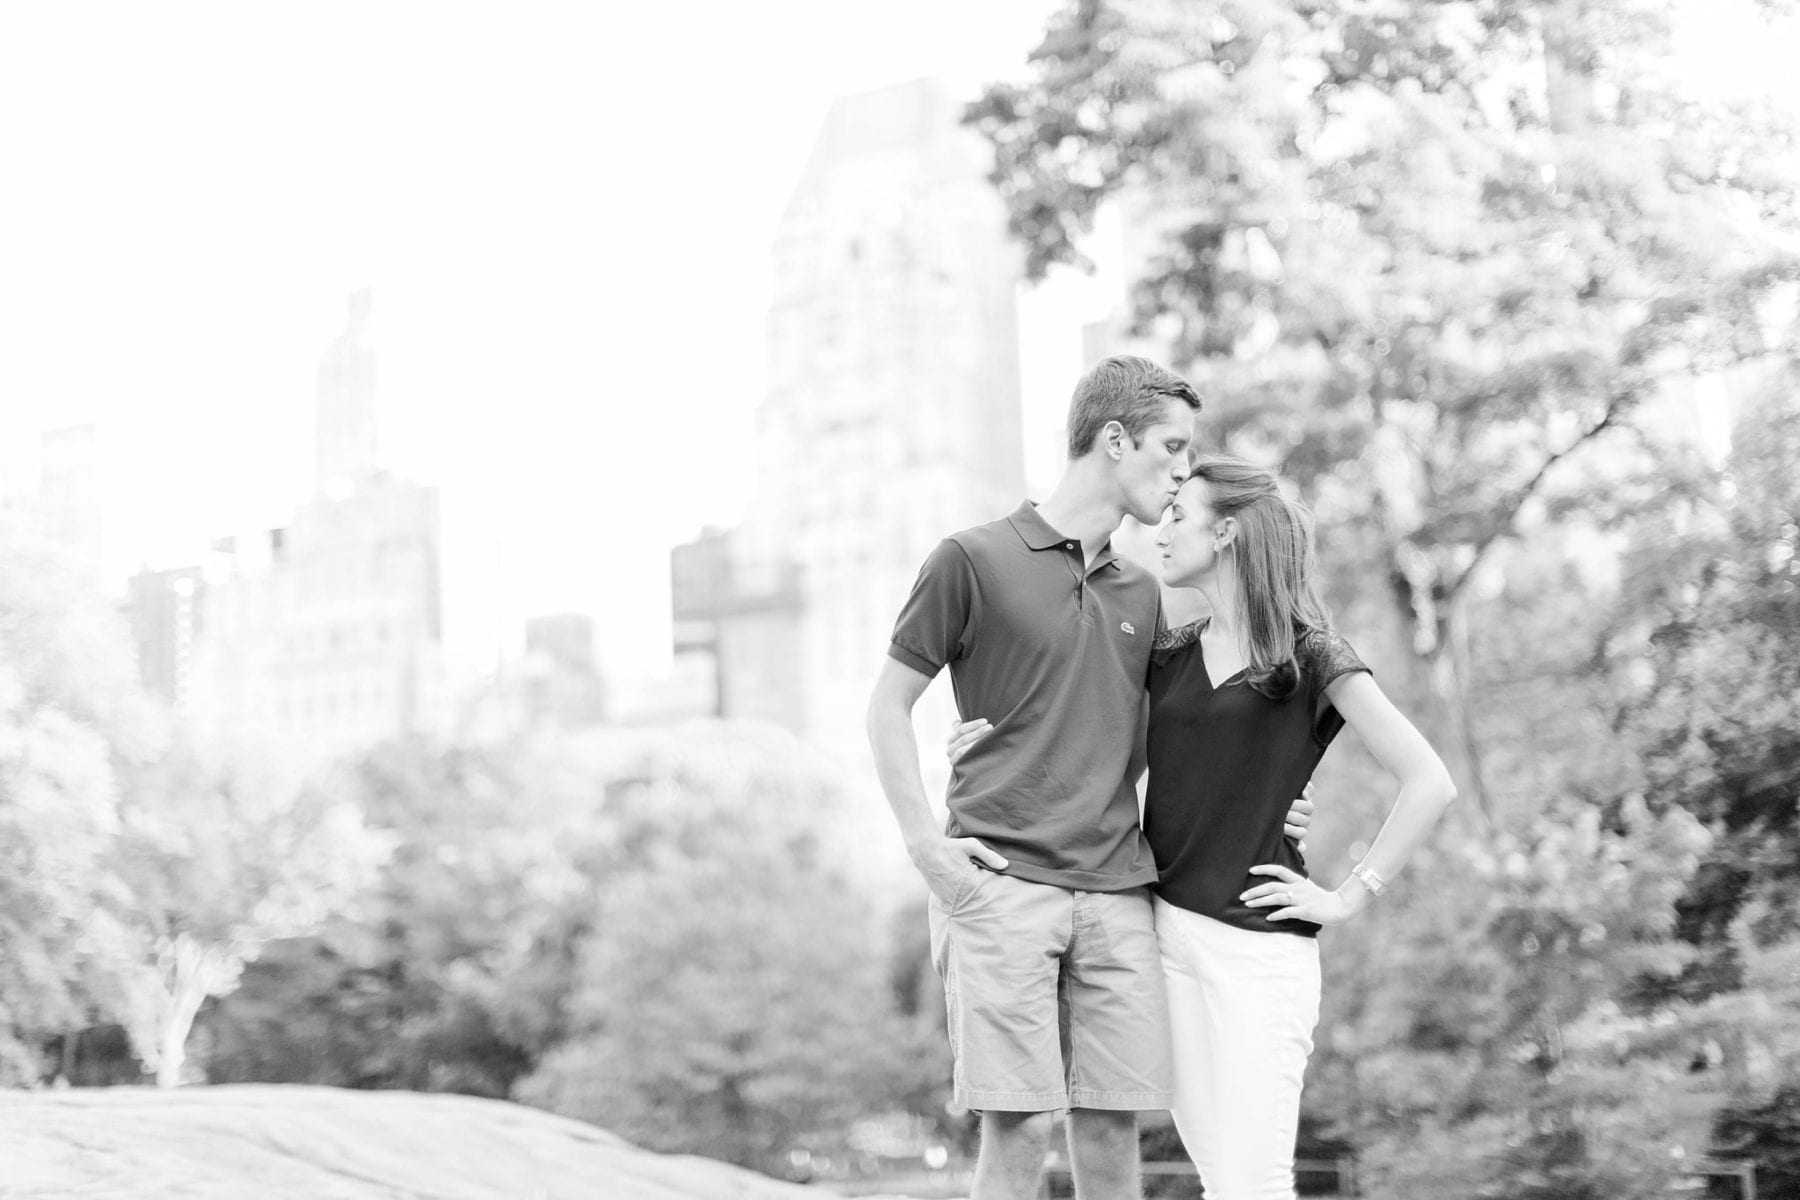 West Village Central Park Engagement Photos NYC Wedding Photographer Megan Kelsey Photography-181.jpg